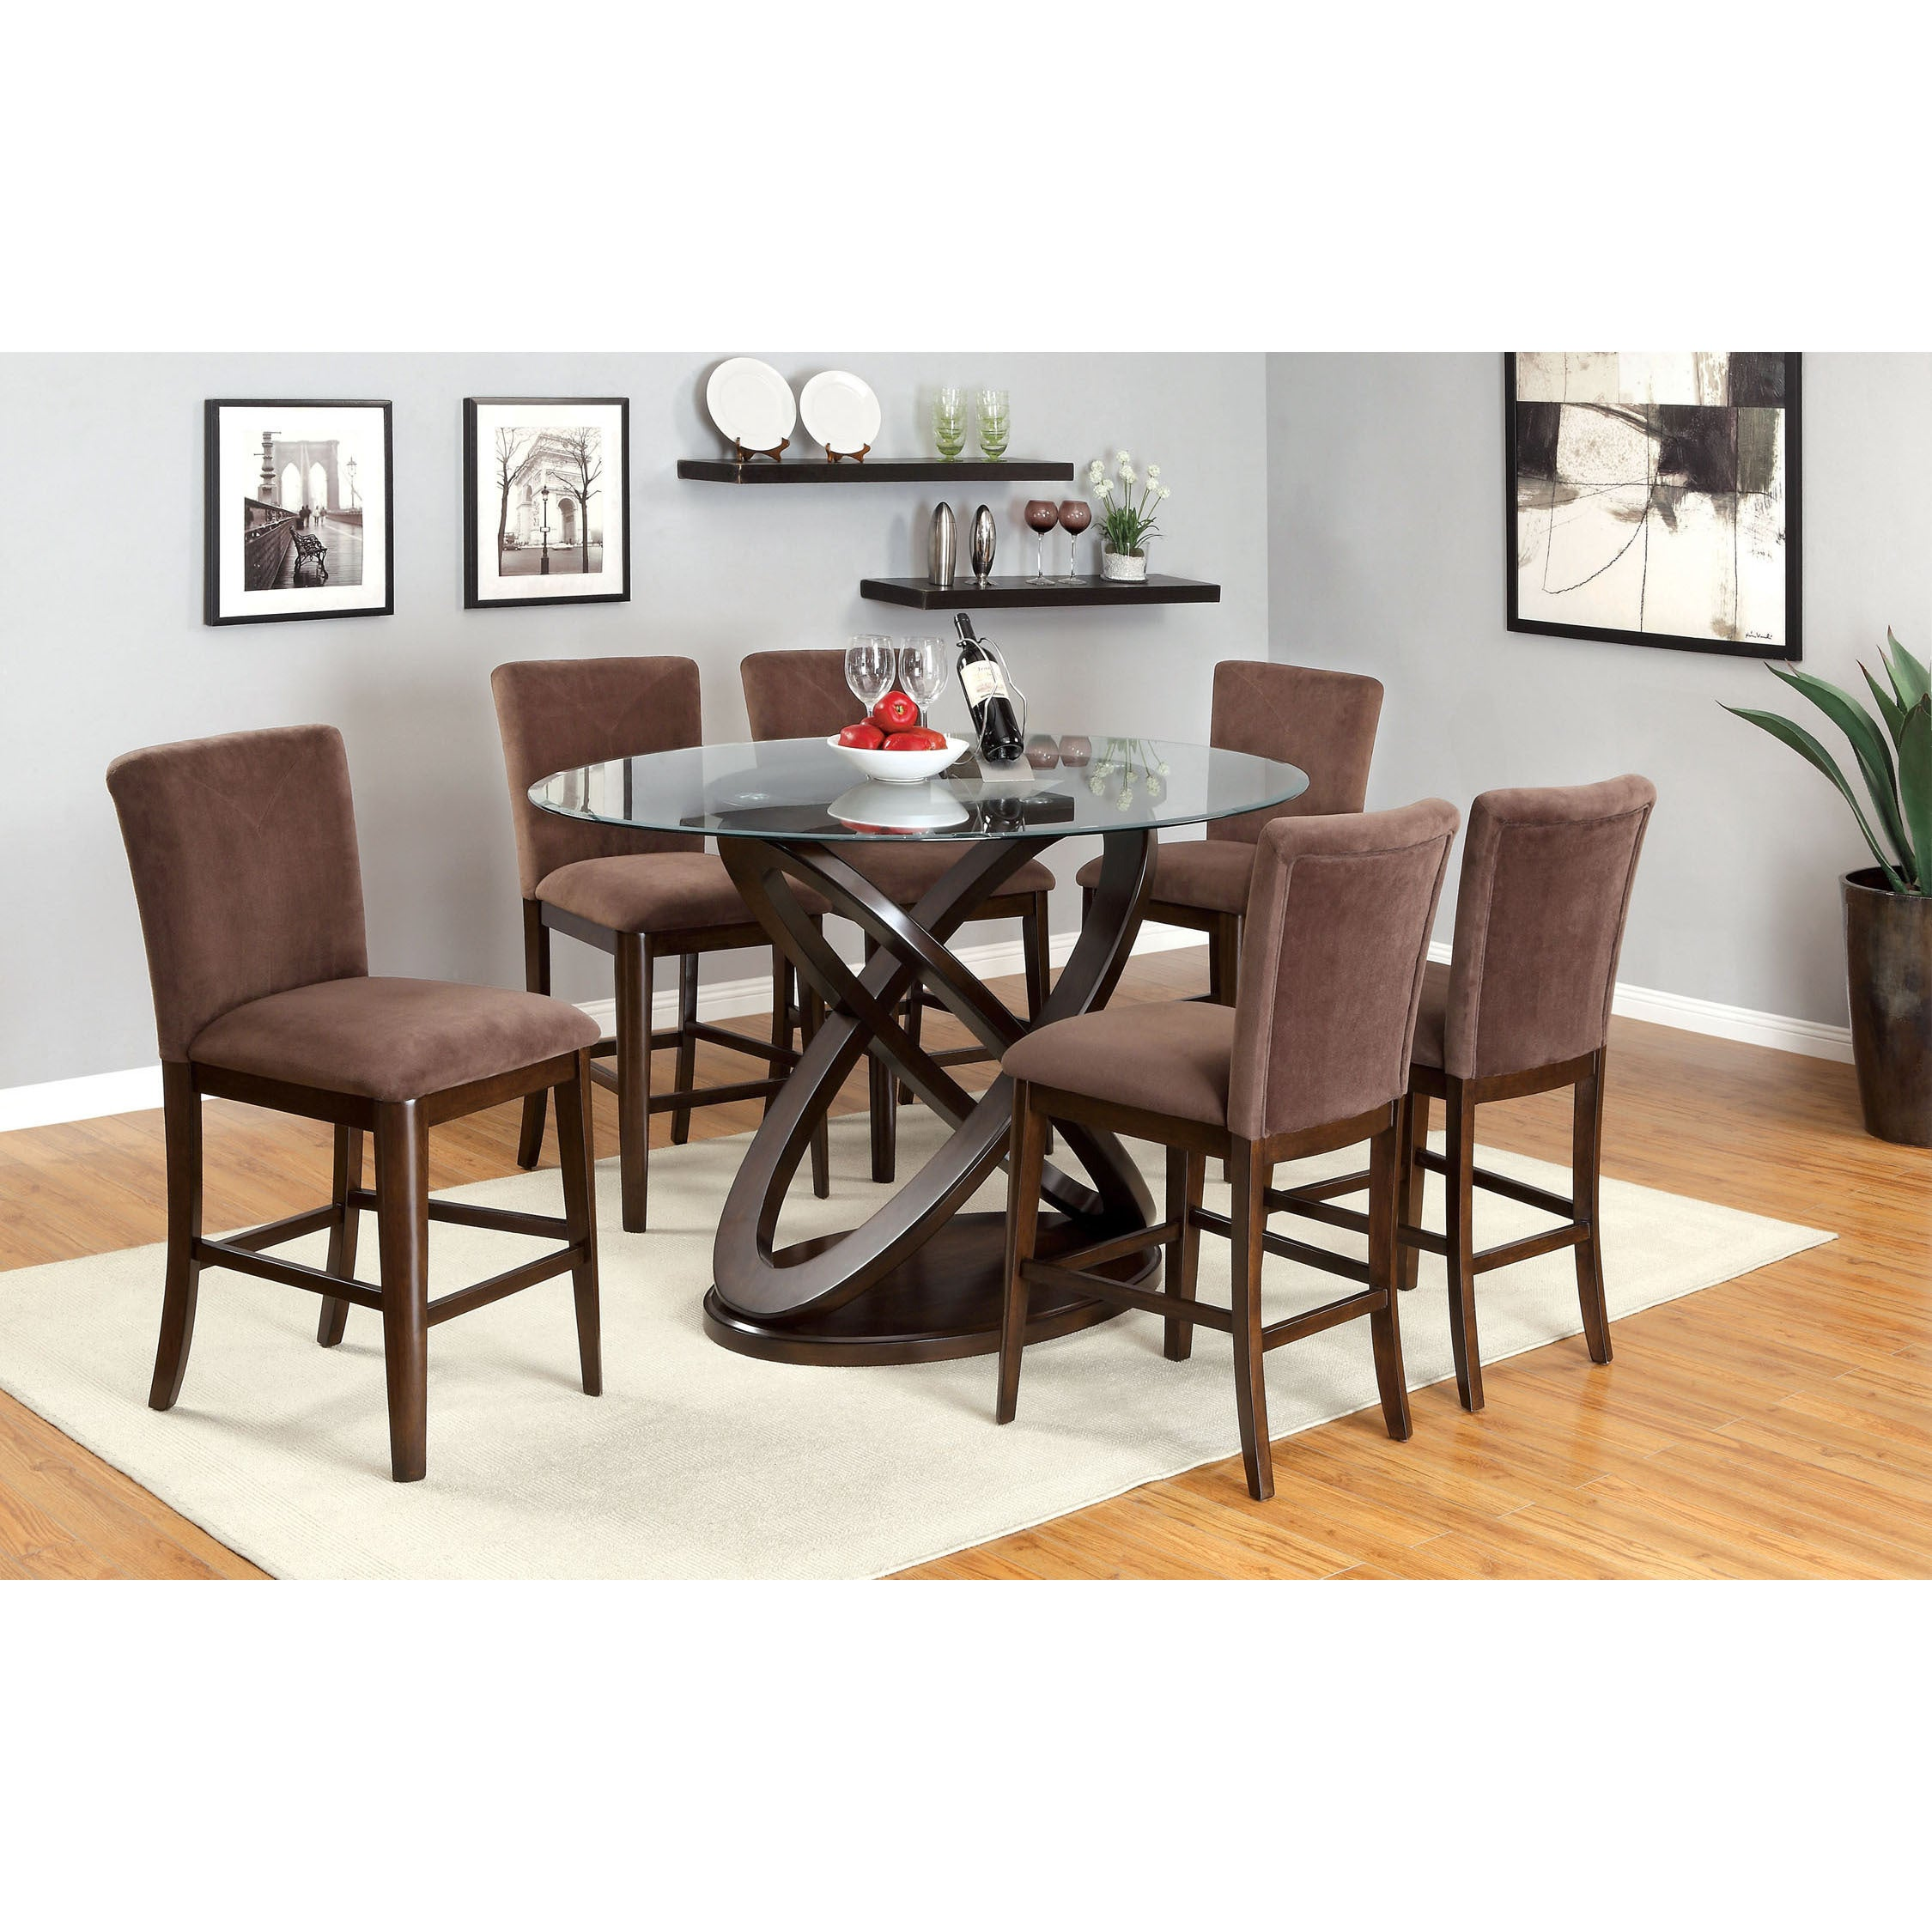 08f7eb5c962fc8 Shop Keystone Contemporary Brown Counter Height Chair (Set of 2) by FOA -  On Sale - Free Shipping Today - Overstock - 9272992